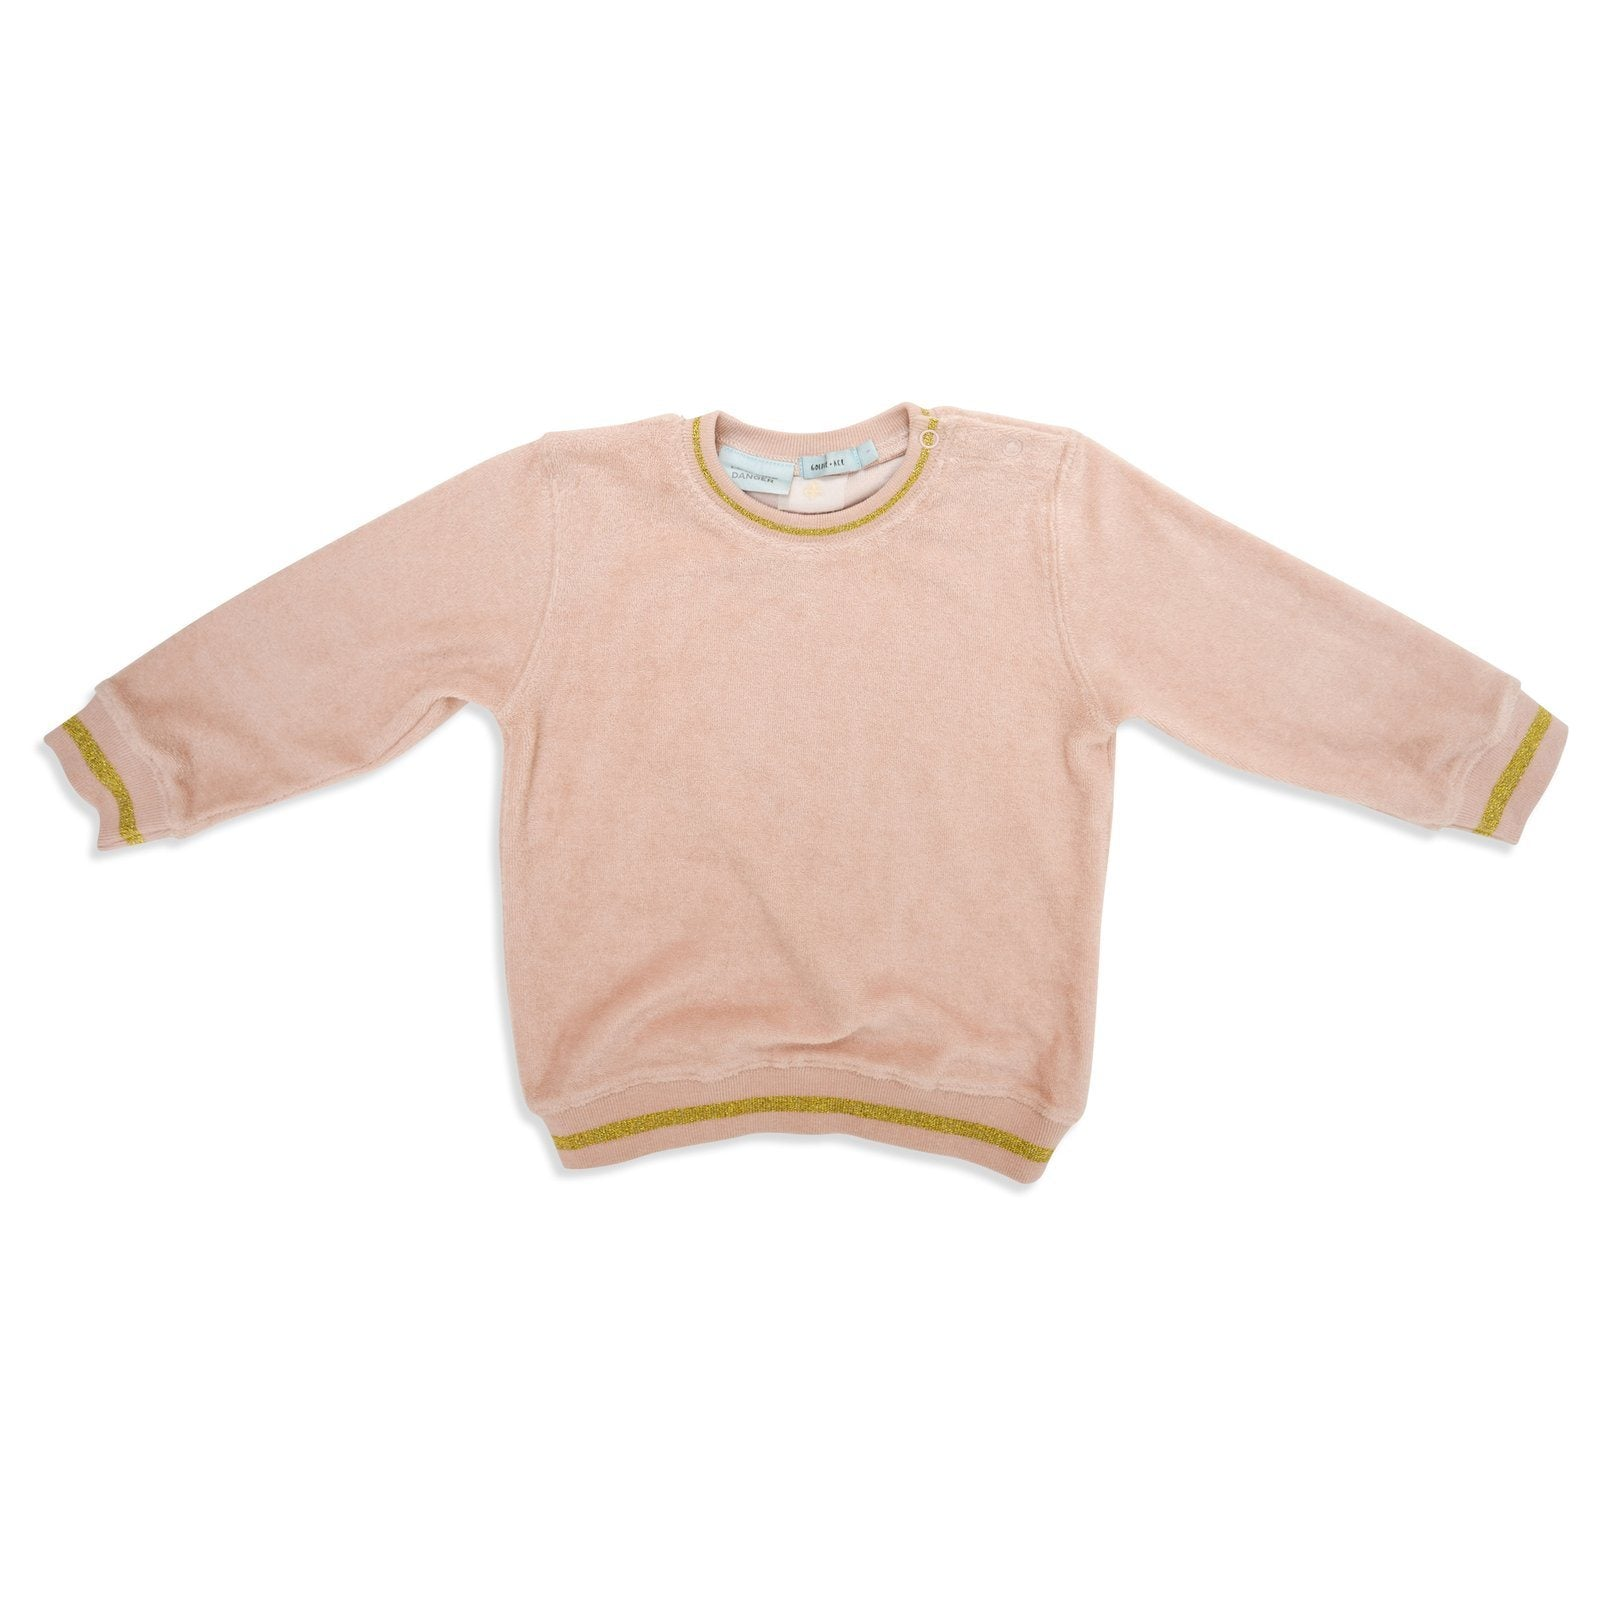 Miami Terry Towelling Sweater (Rose Dust/Gold)